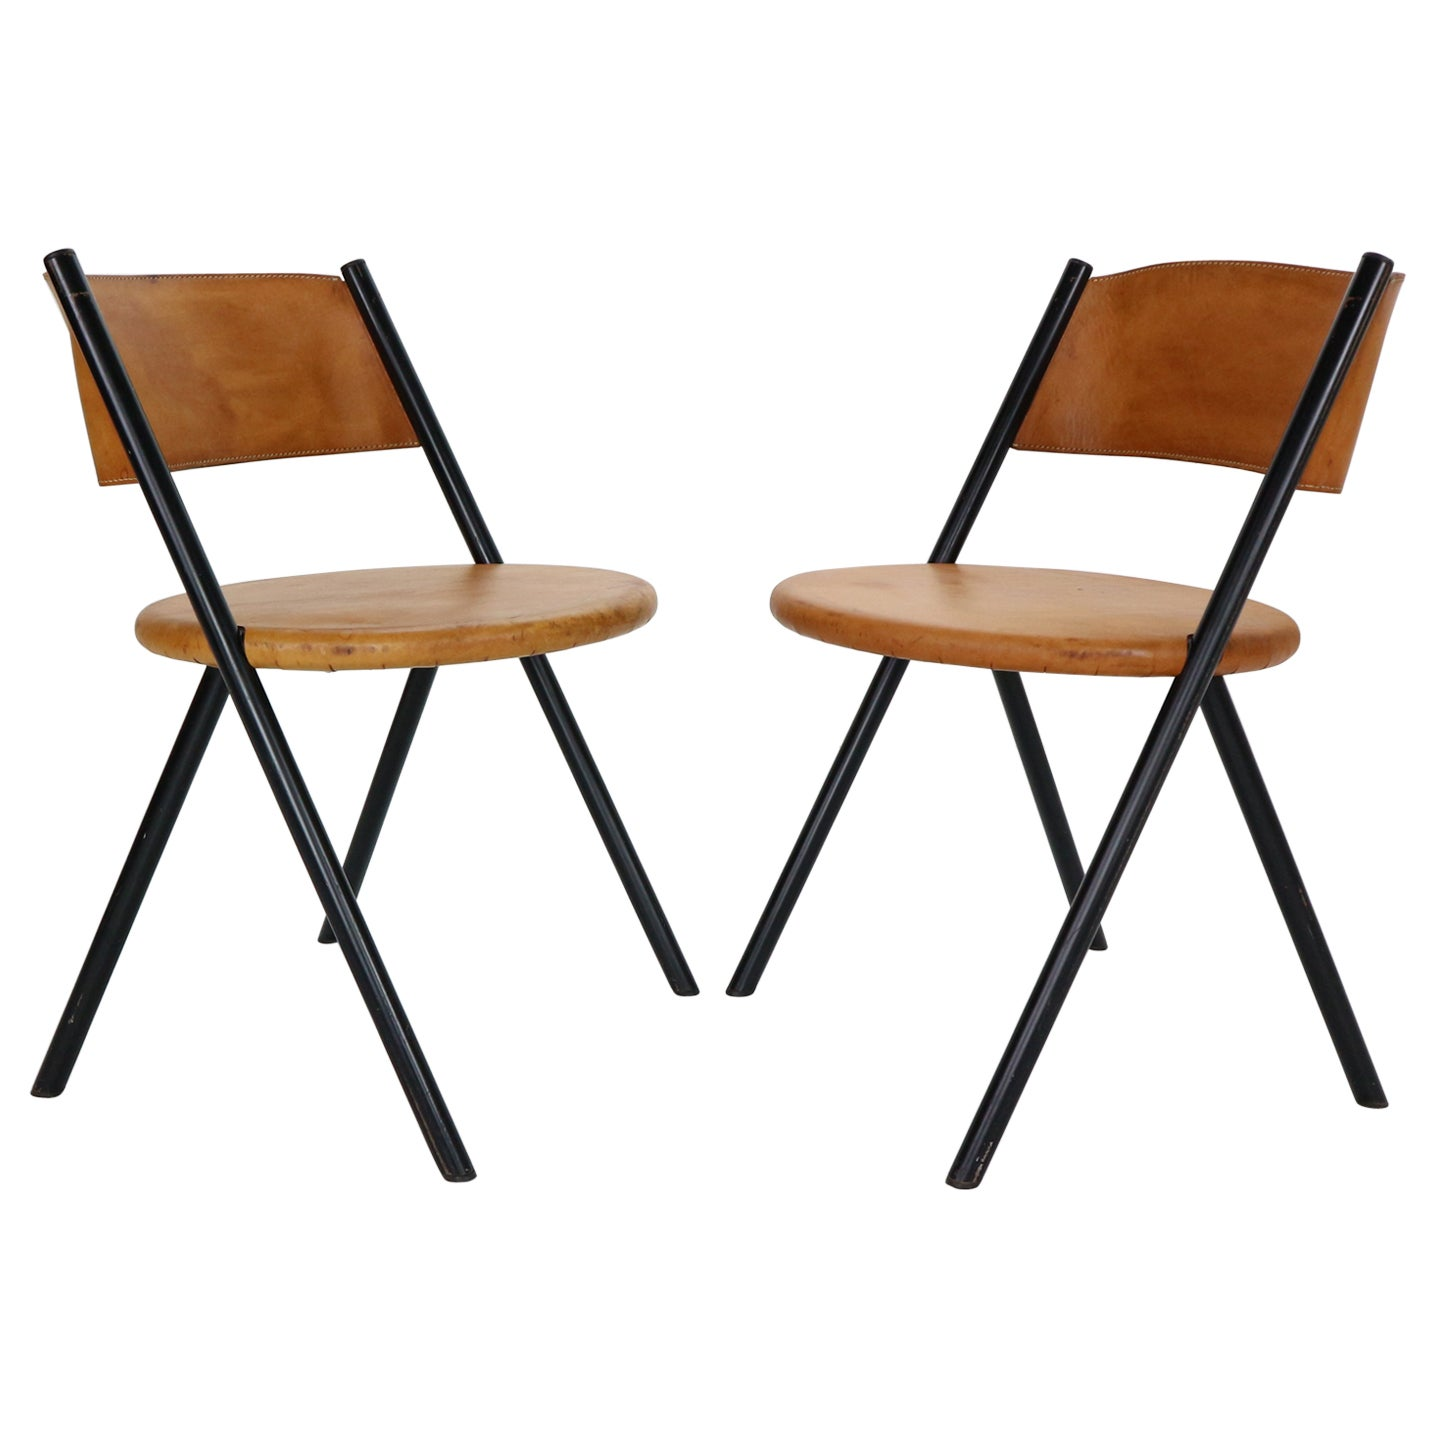 Mid-Century Modern Set of 2 Cognac Leather Chairs, 1970s, Italy